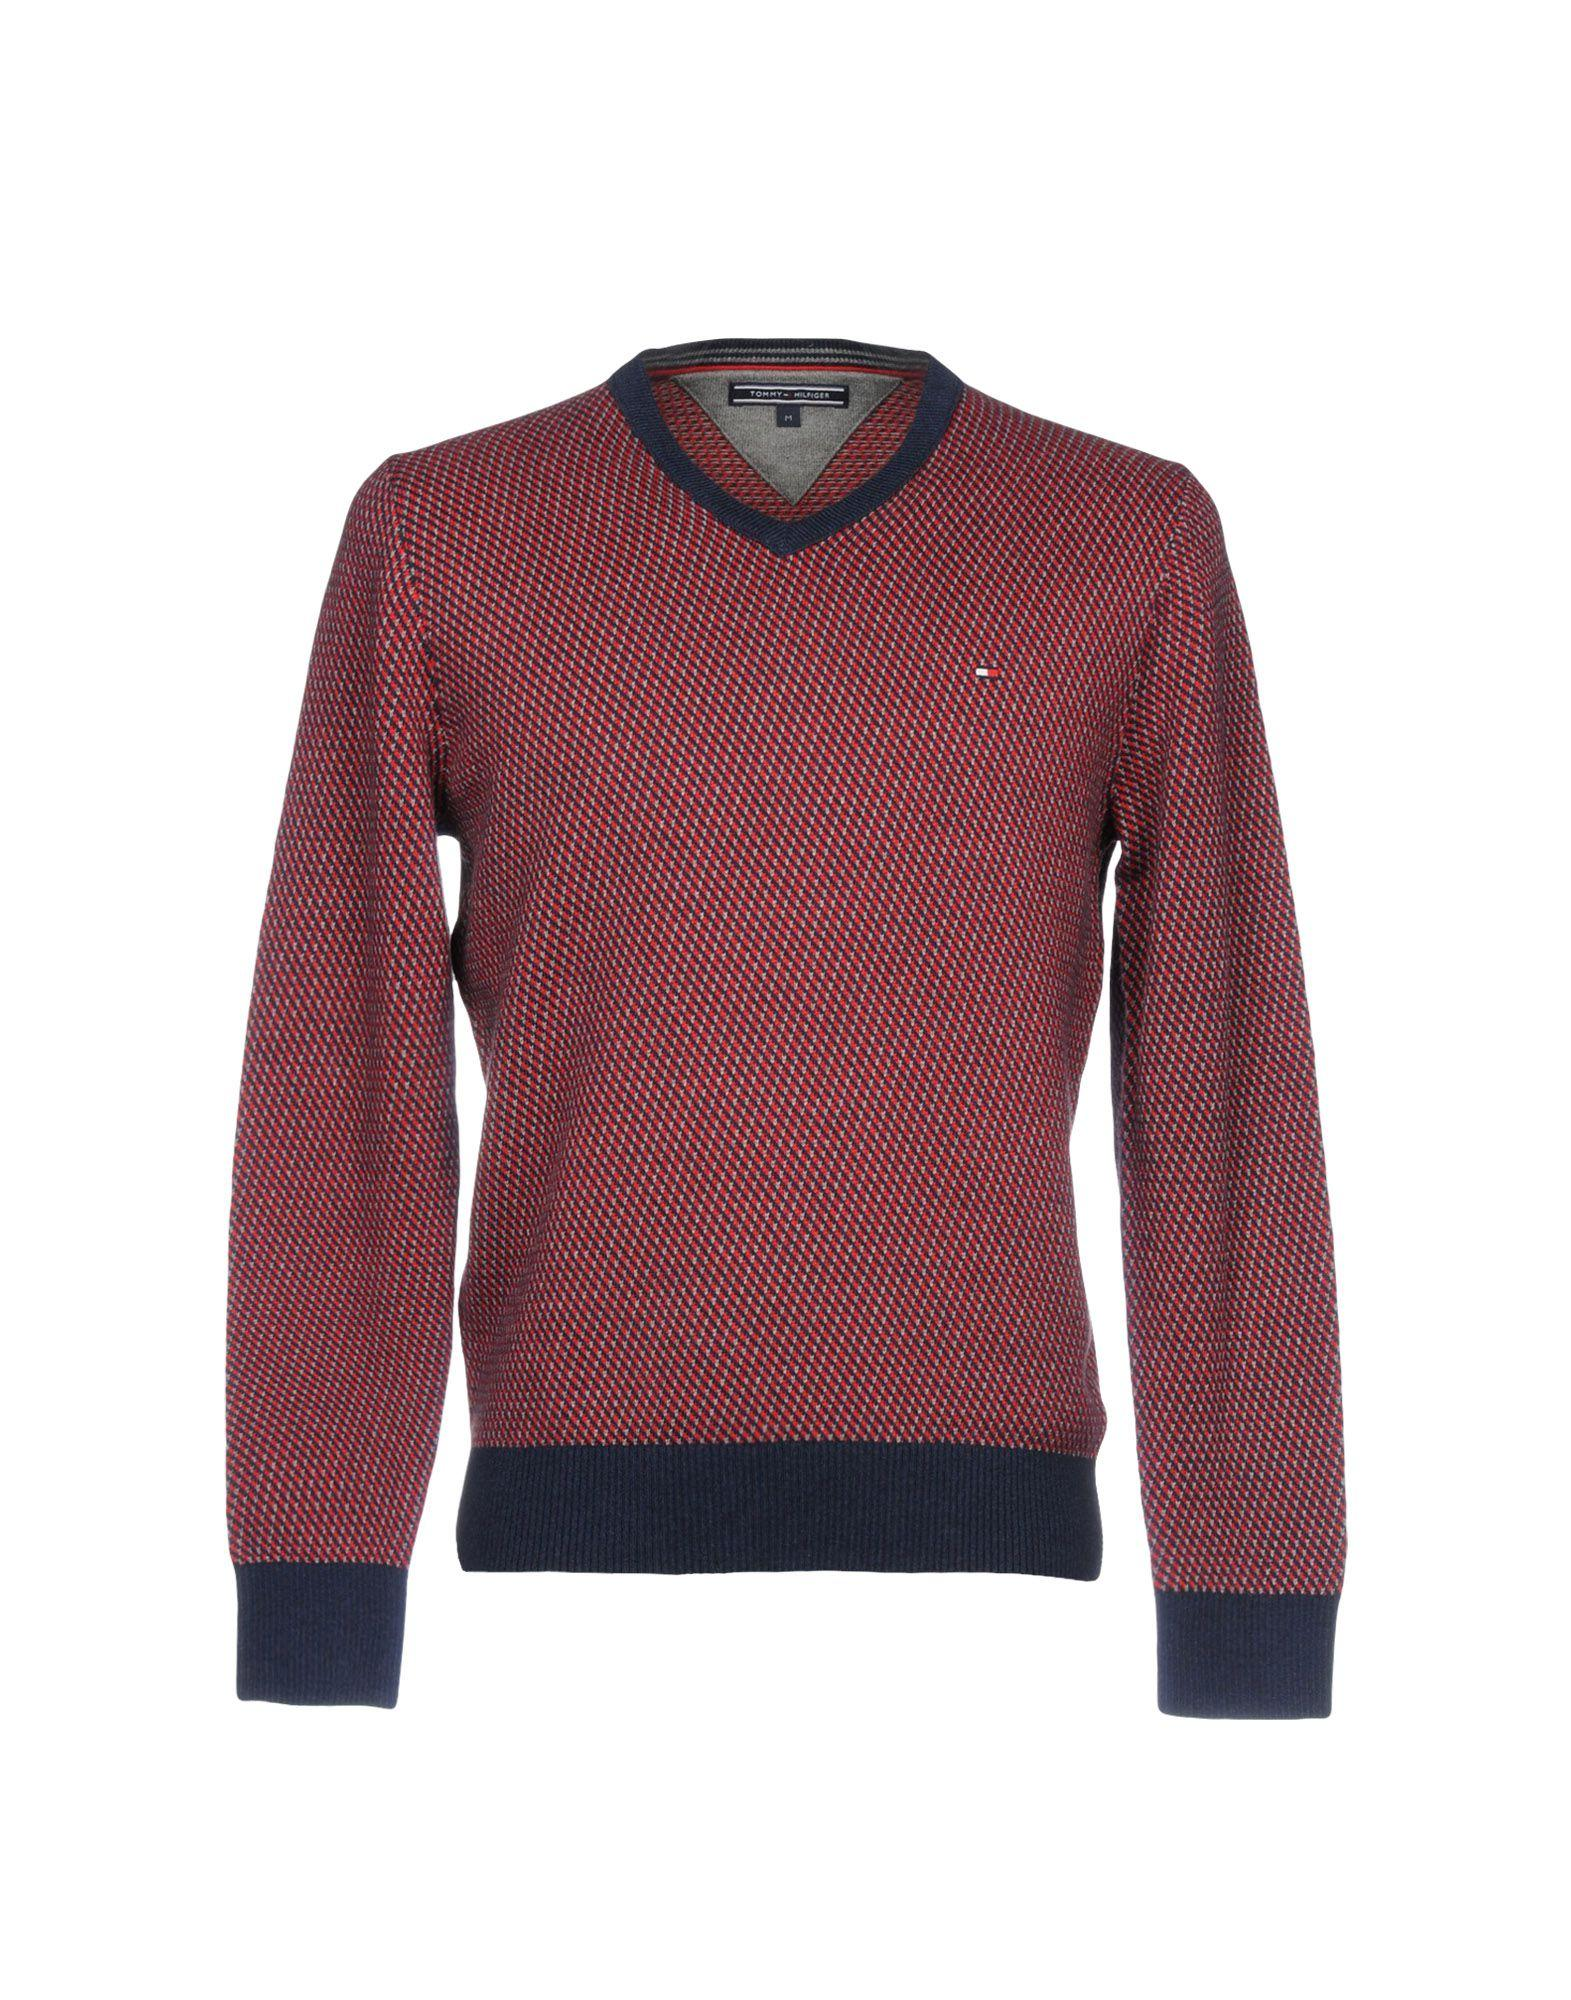 Tommy Hilfiger Sweater In Red